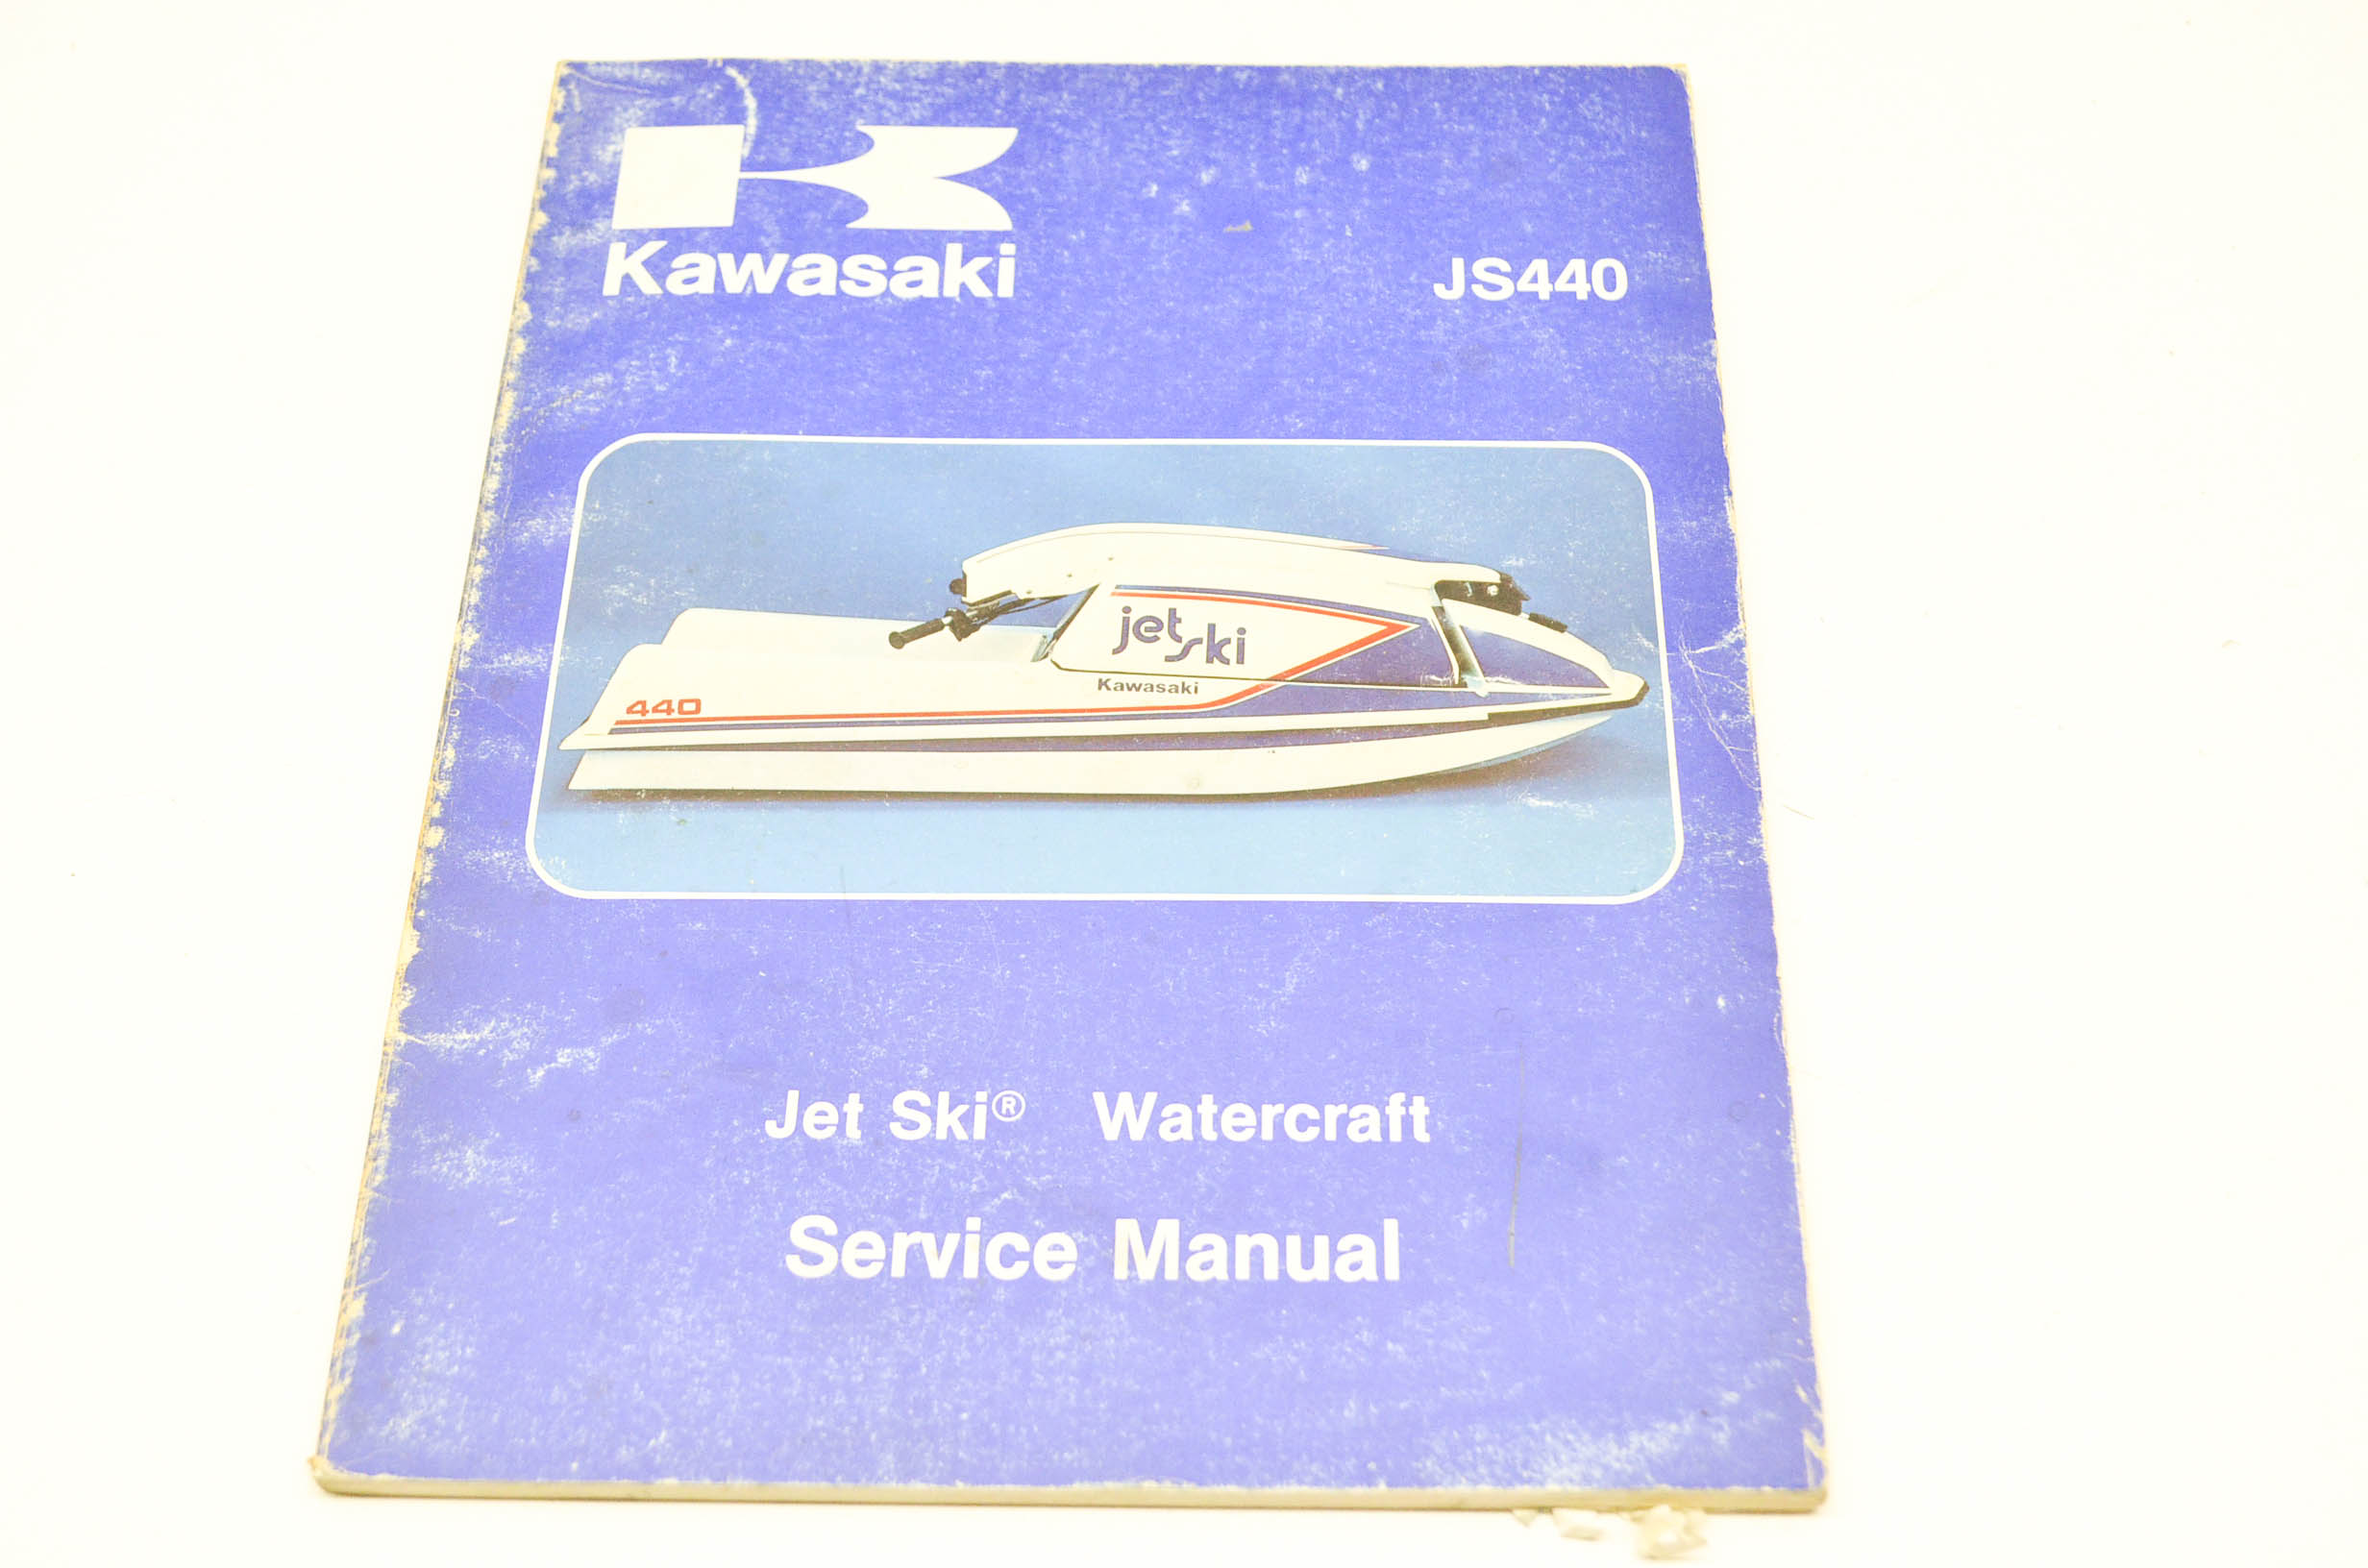 Kawasaki Js440 Wiring Diagram Electrical Diagrams 1100 Stx 99963 0001 05 Jet Ski Watercraft Service Manual Qty 440